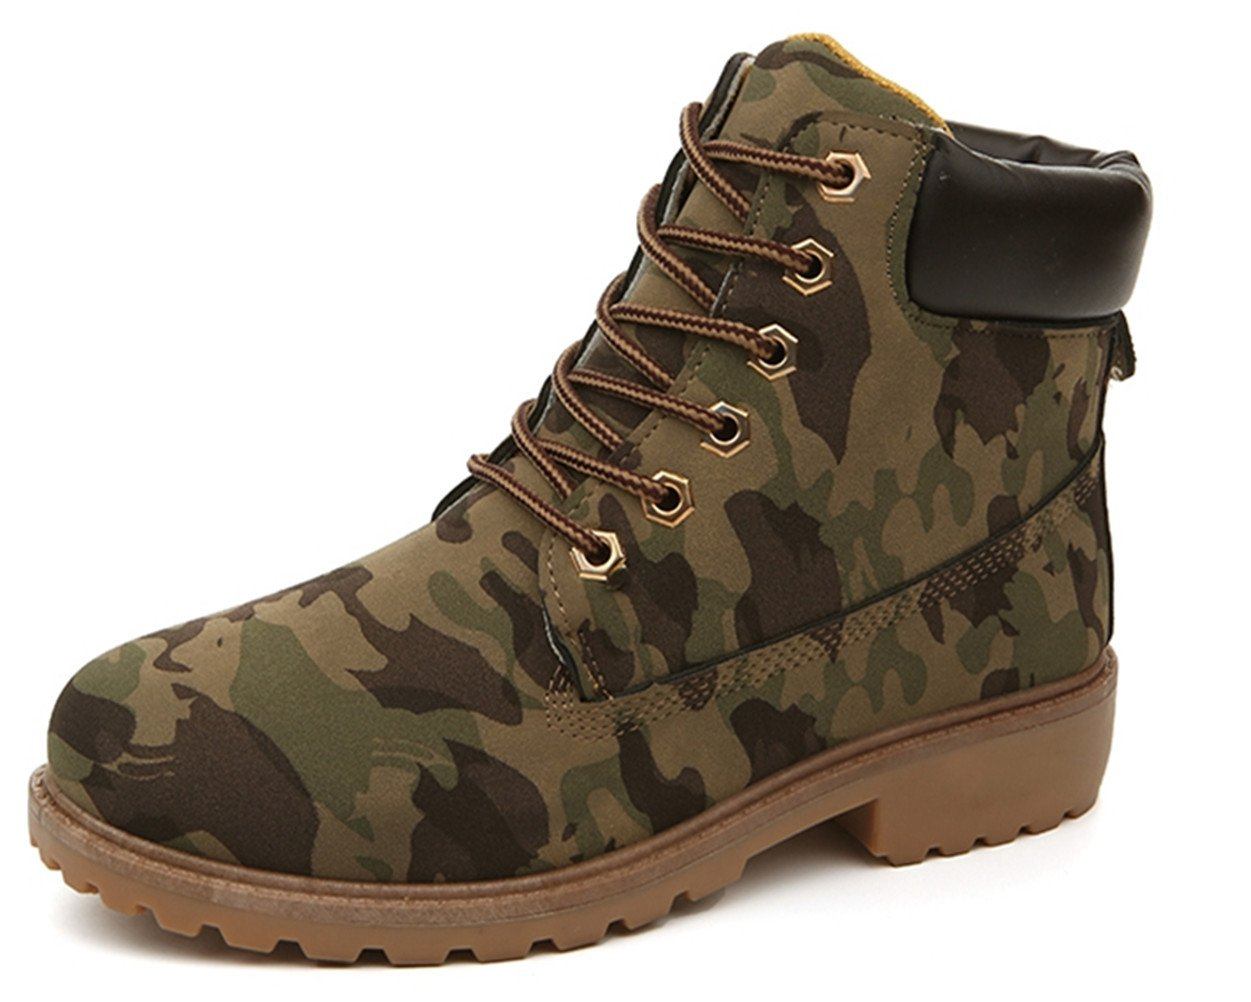 DADAWEN Women's Lace Up Low Heel Work Combat Boots Waterproof Ankle Bootie Mixed US Size 8.5